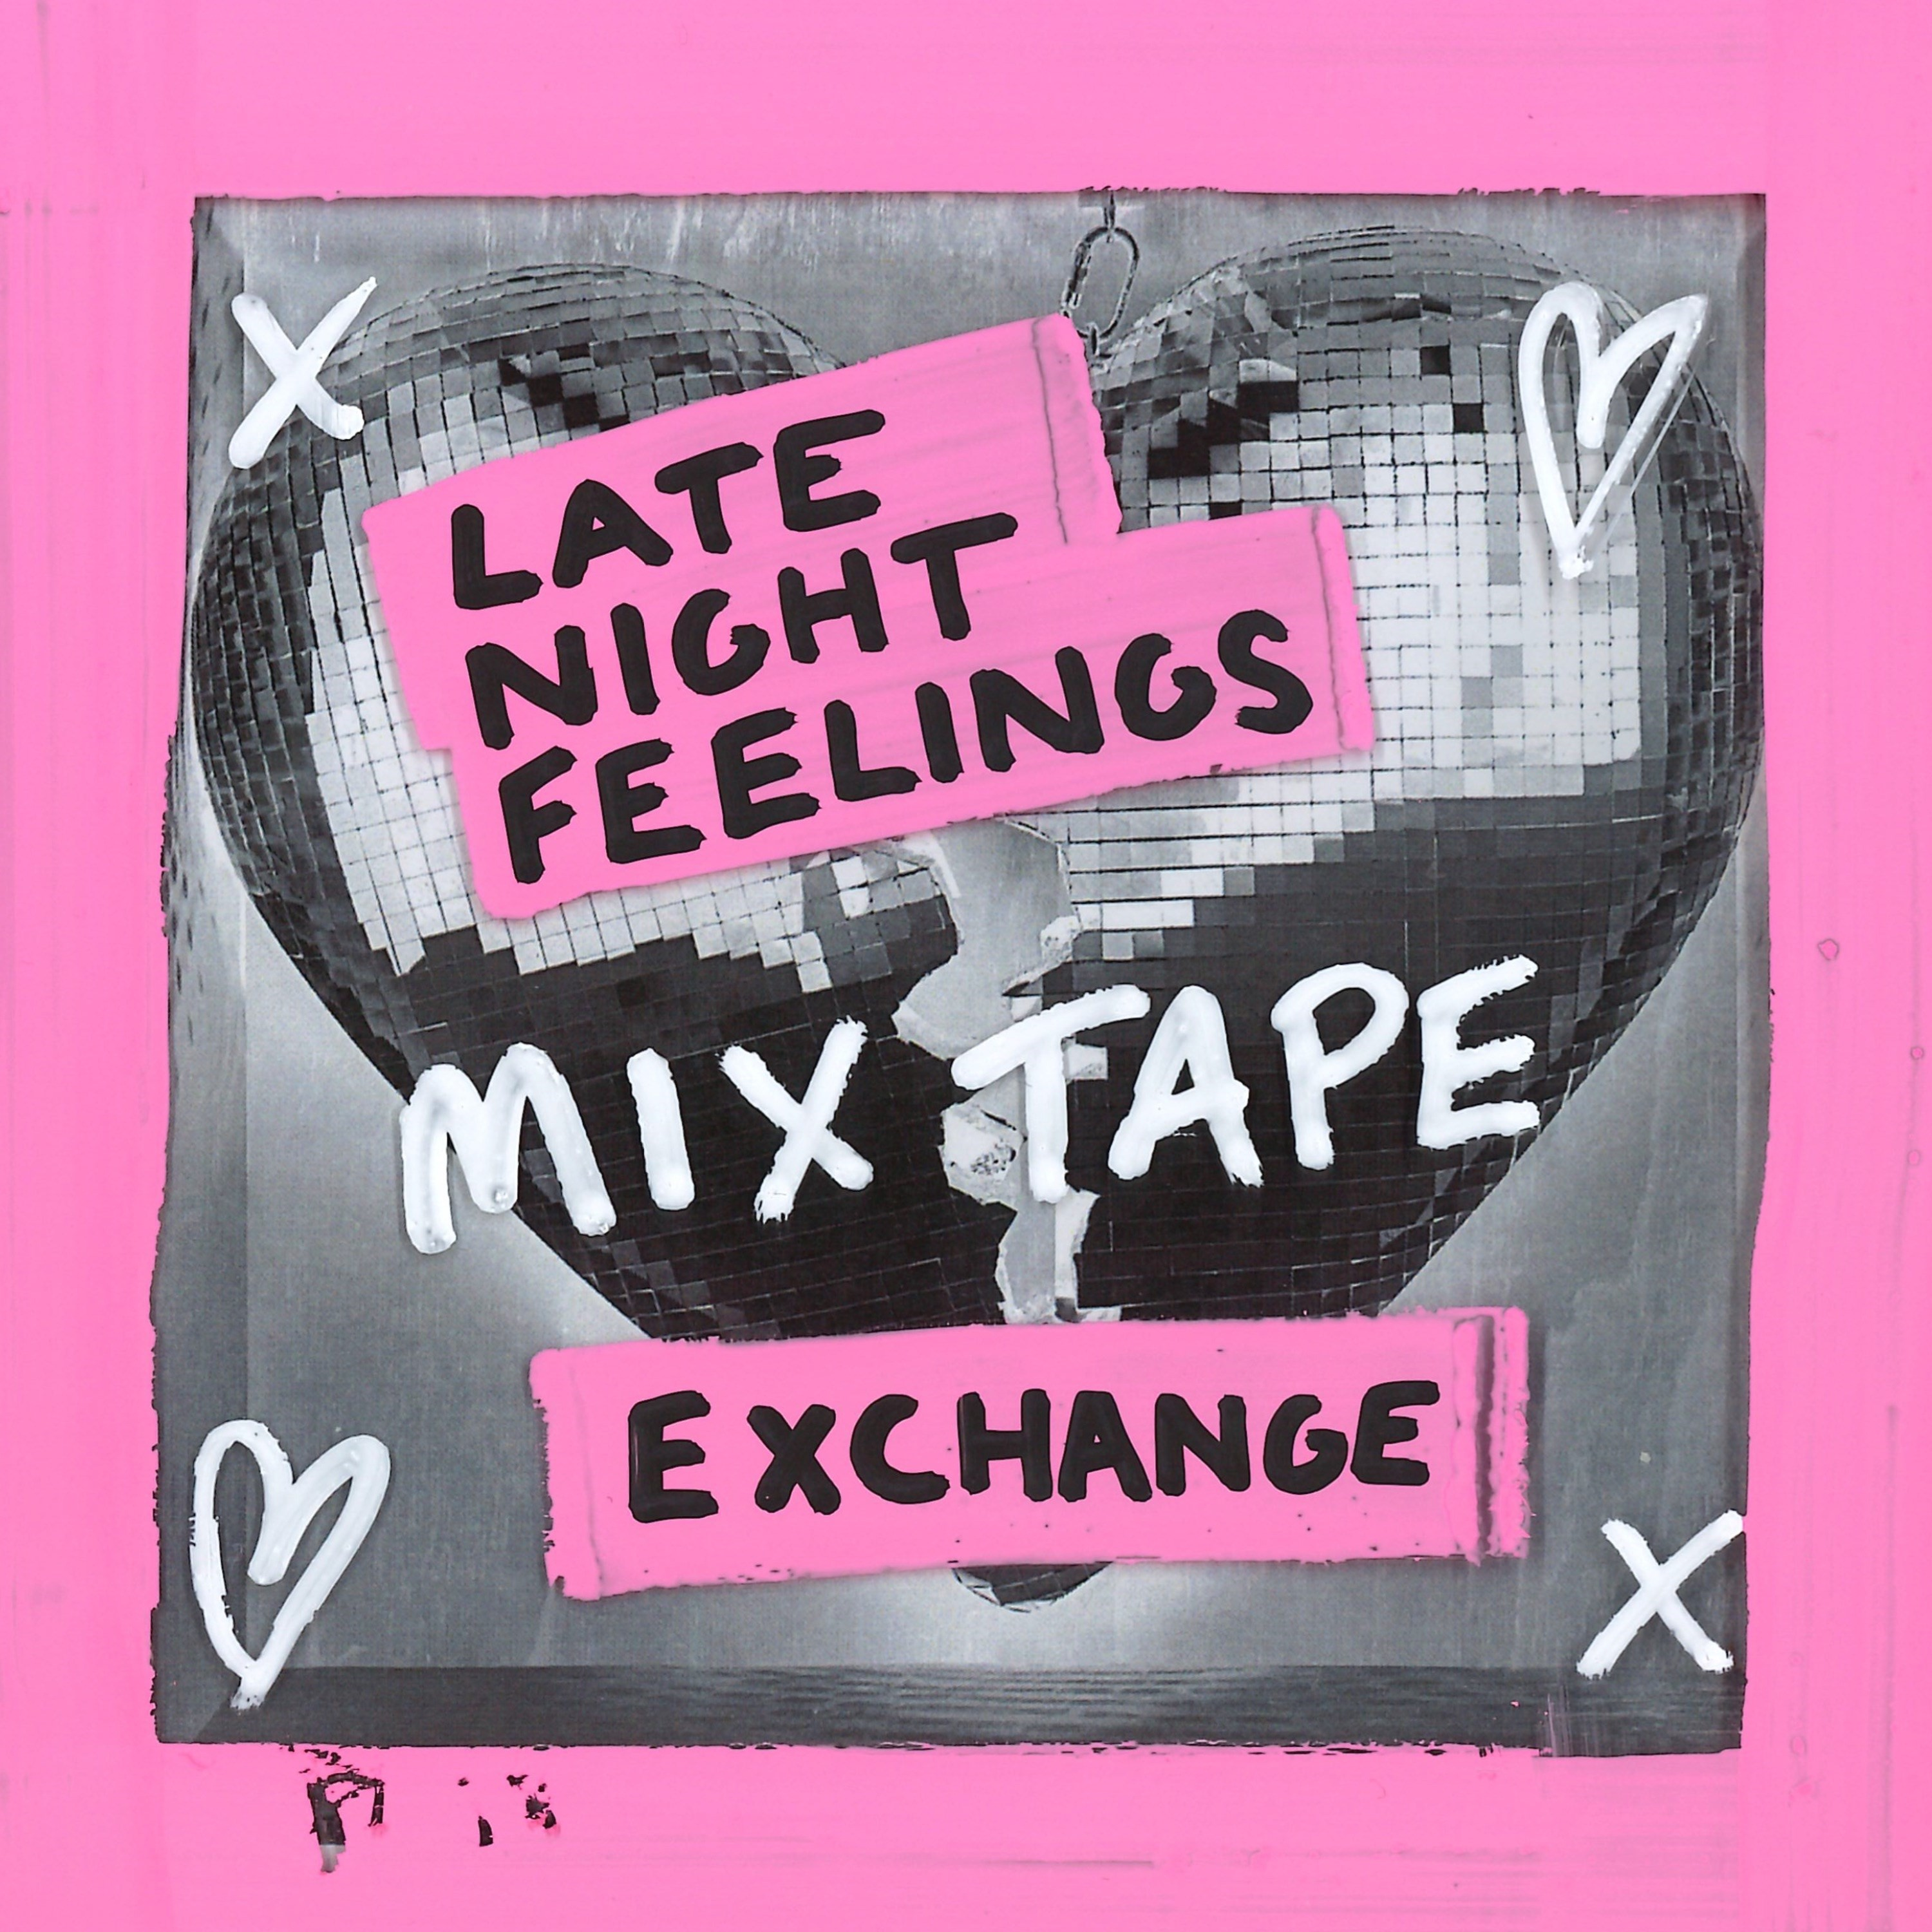 """Add Your Own """"Sad Bangers"""" to Mark Ronson's Mixtape Exchange"""